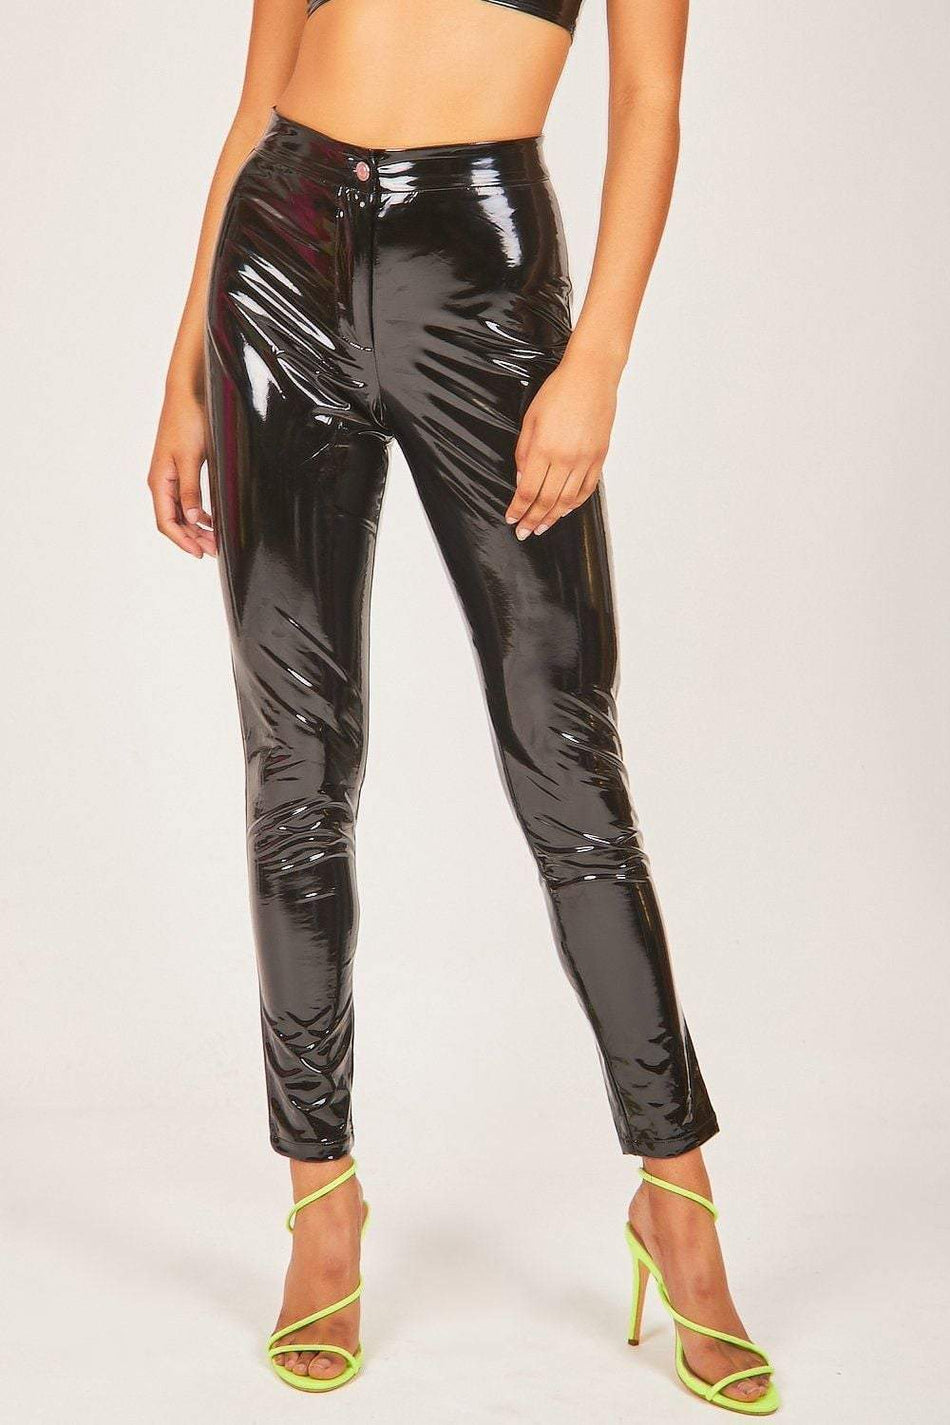 Black Vinyl Patent Leggings - KATCH ME